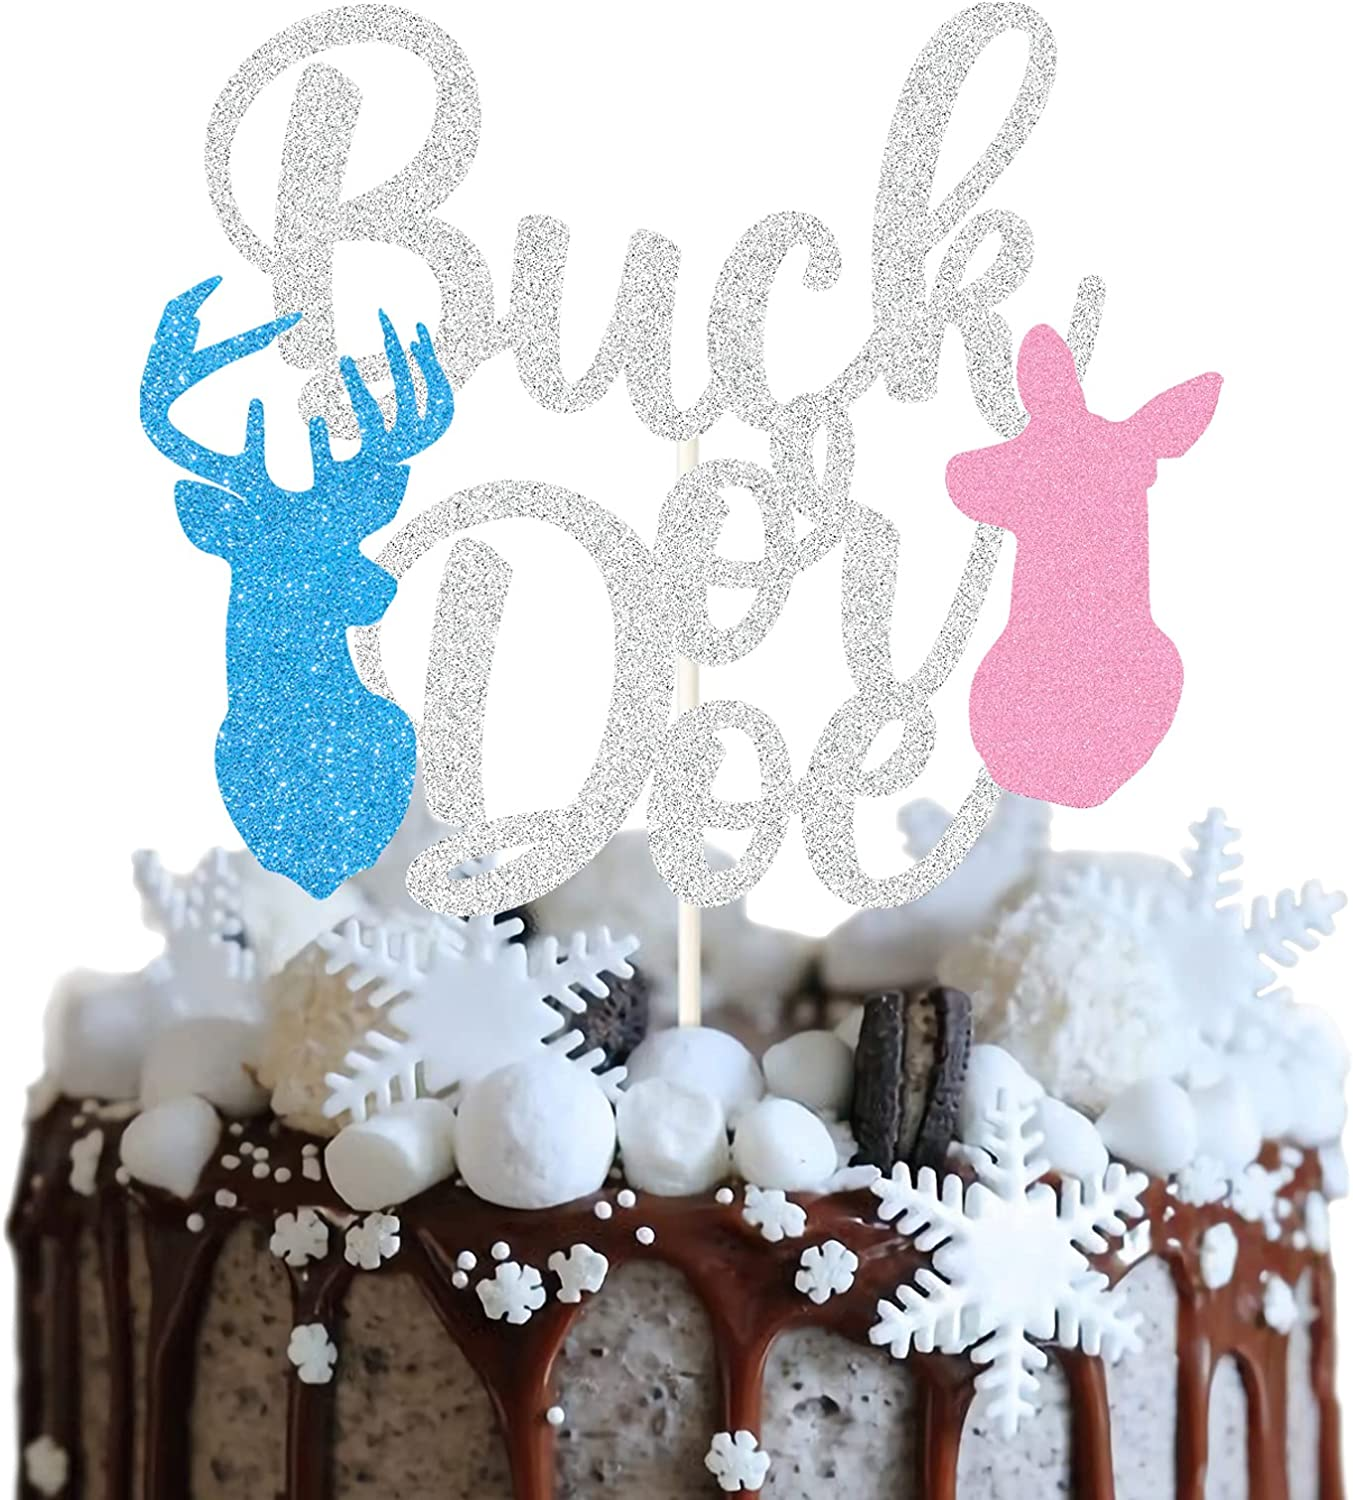 Buck or Doe Cake Topper,Baby Shower Cake Decor,Winter Gender Reveal Party Decoration Products , Glitter Deer Cake Topper, He or She?